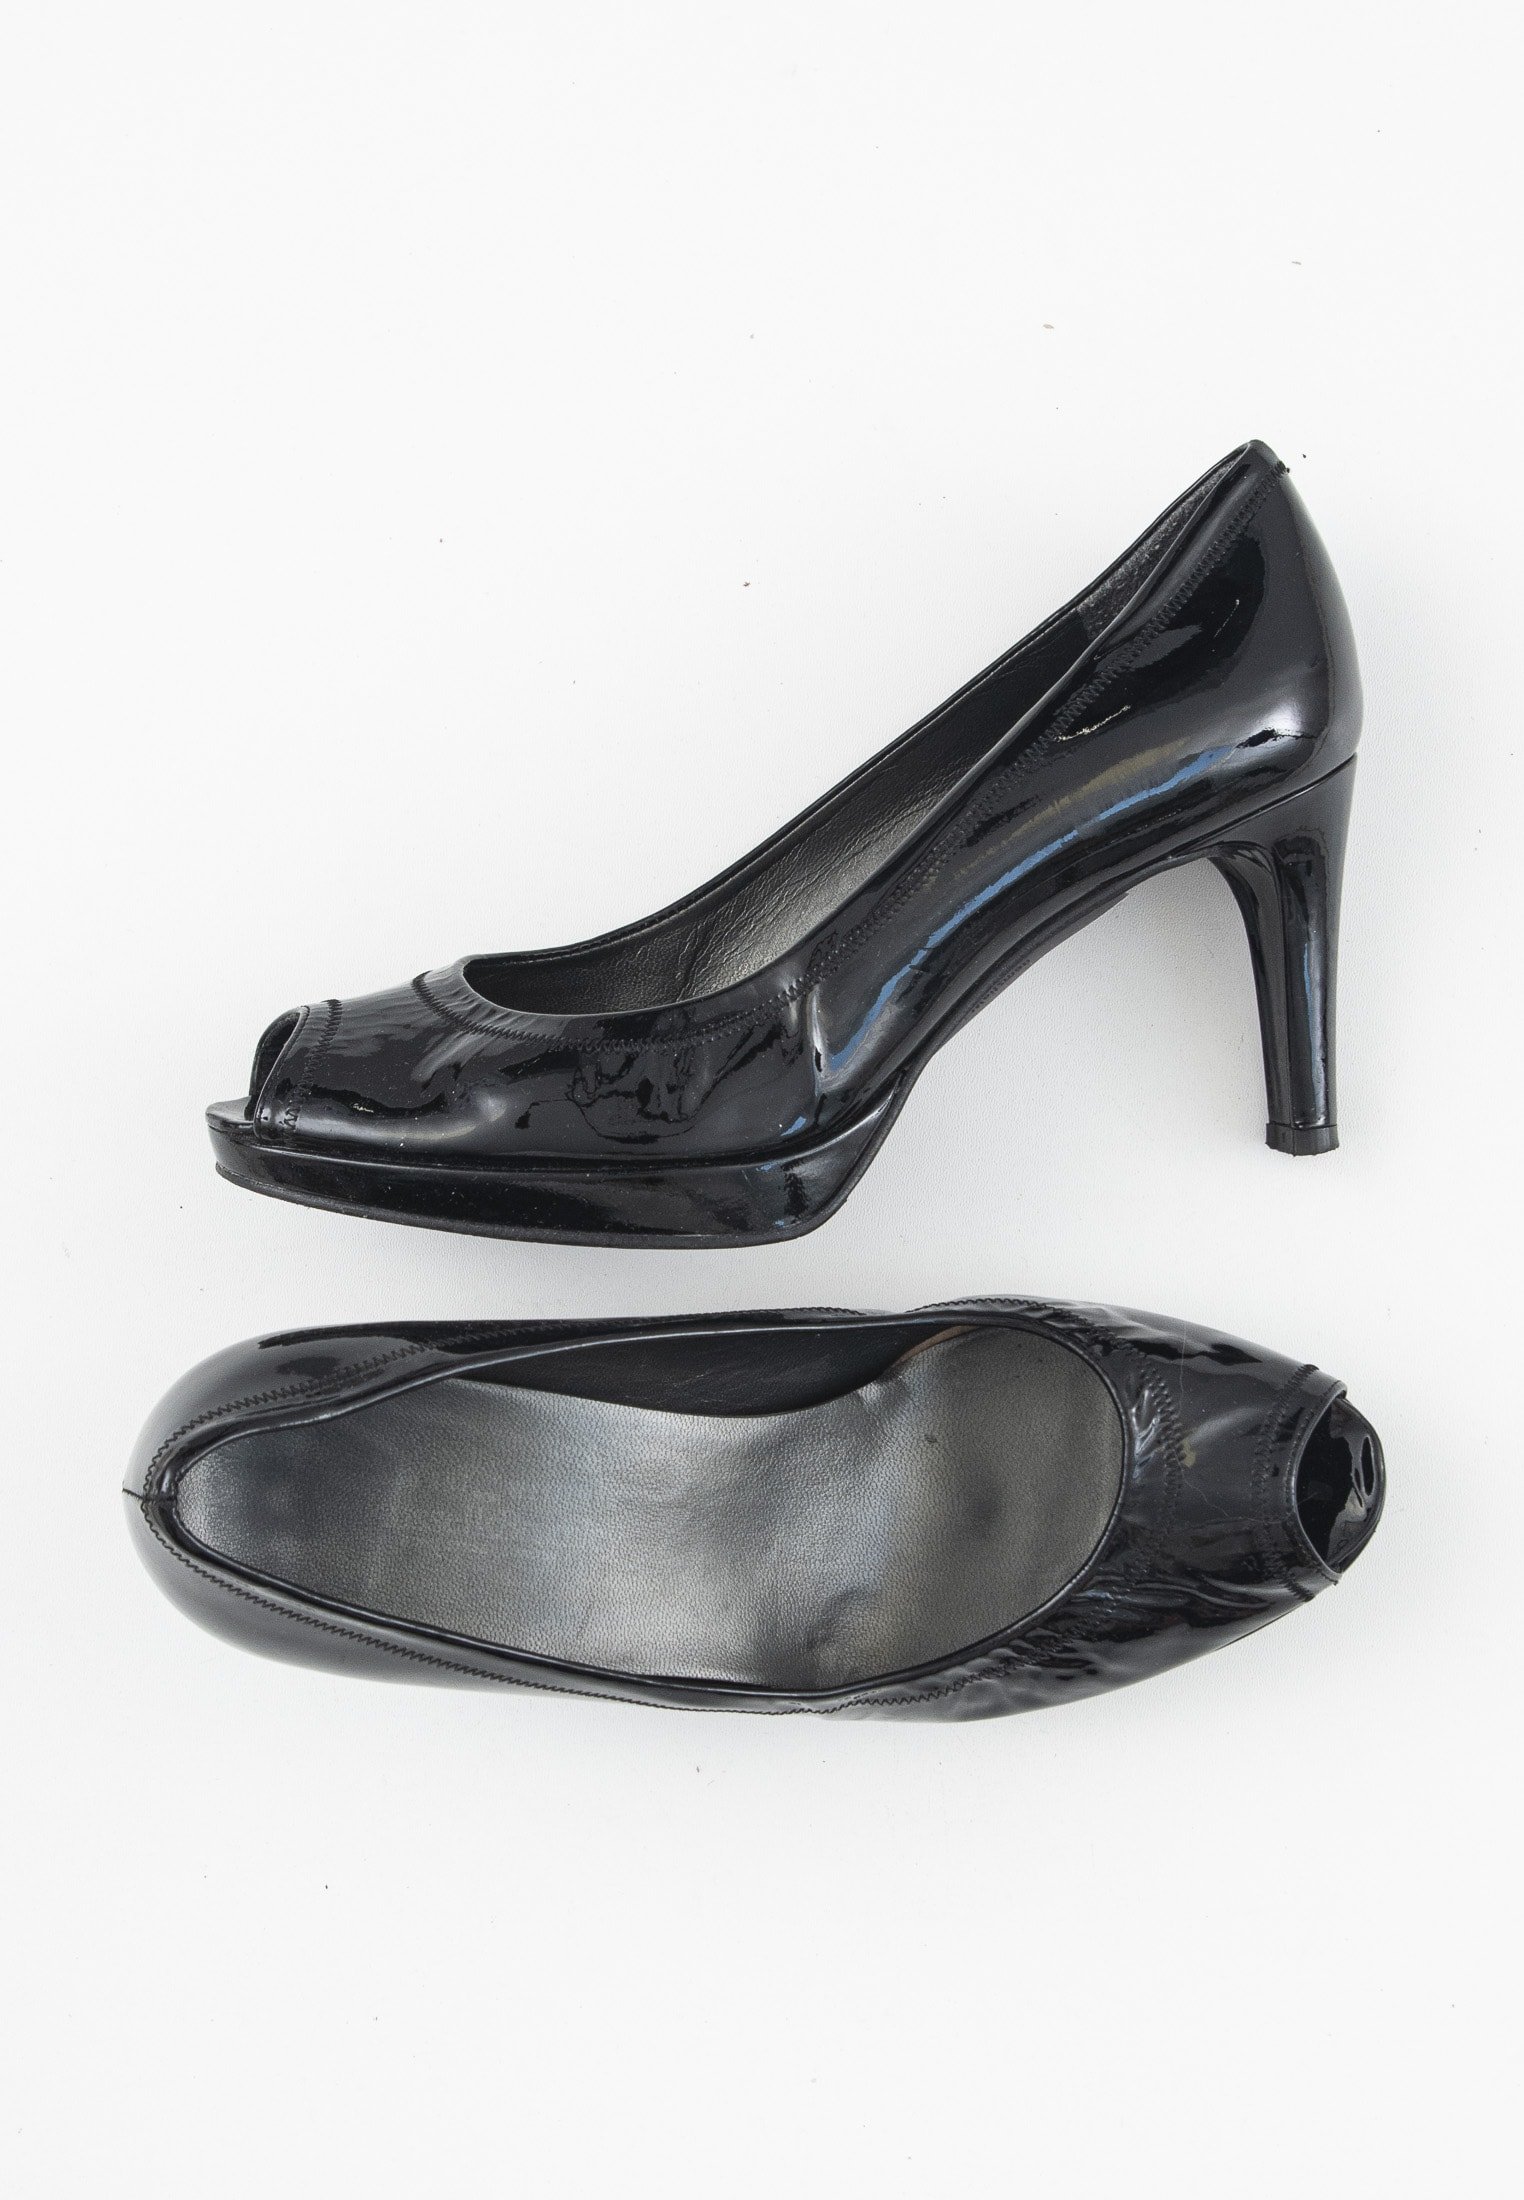 Stuart Weitzman pumps, sort, 42 2/3